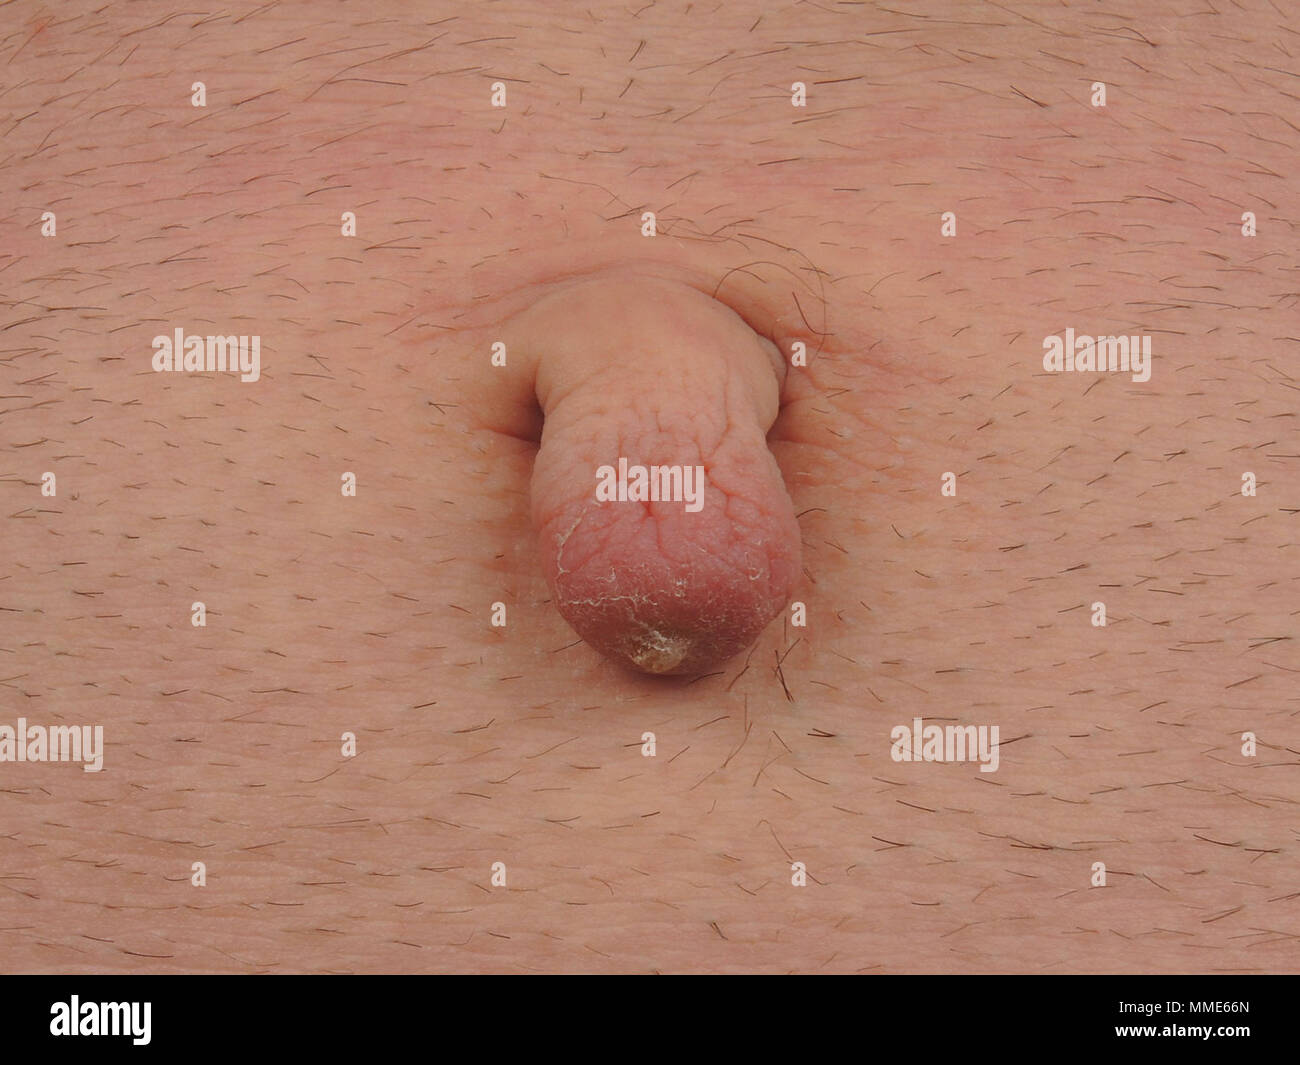 Ehlers Danlos Syndrome Umbilicus Excrescence Caused By Ehlers Danlos Syndrome Stock Photo